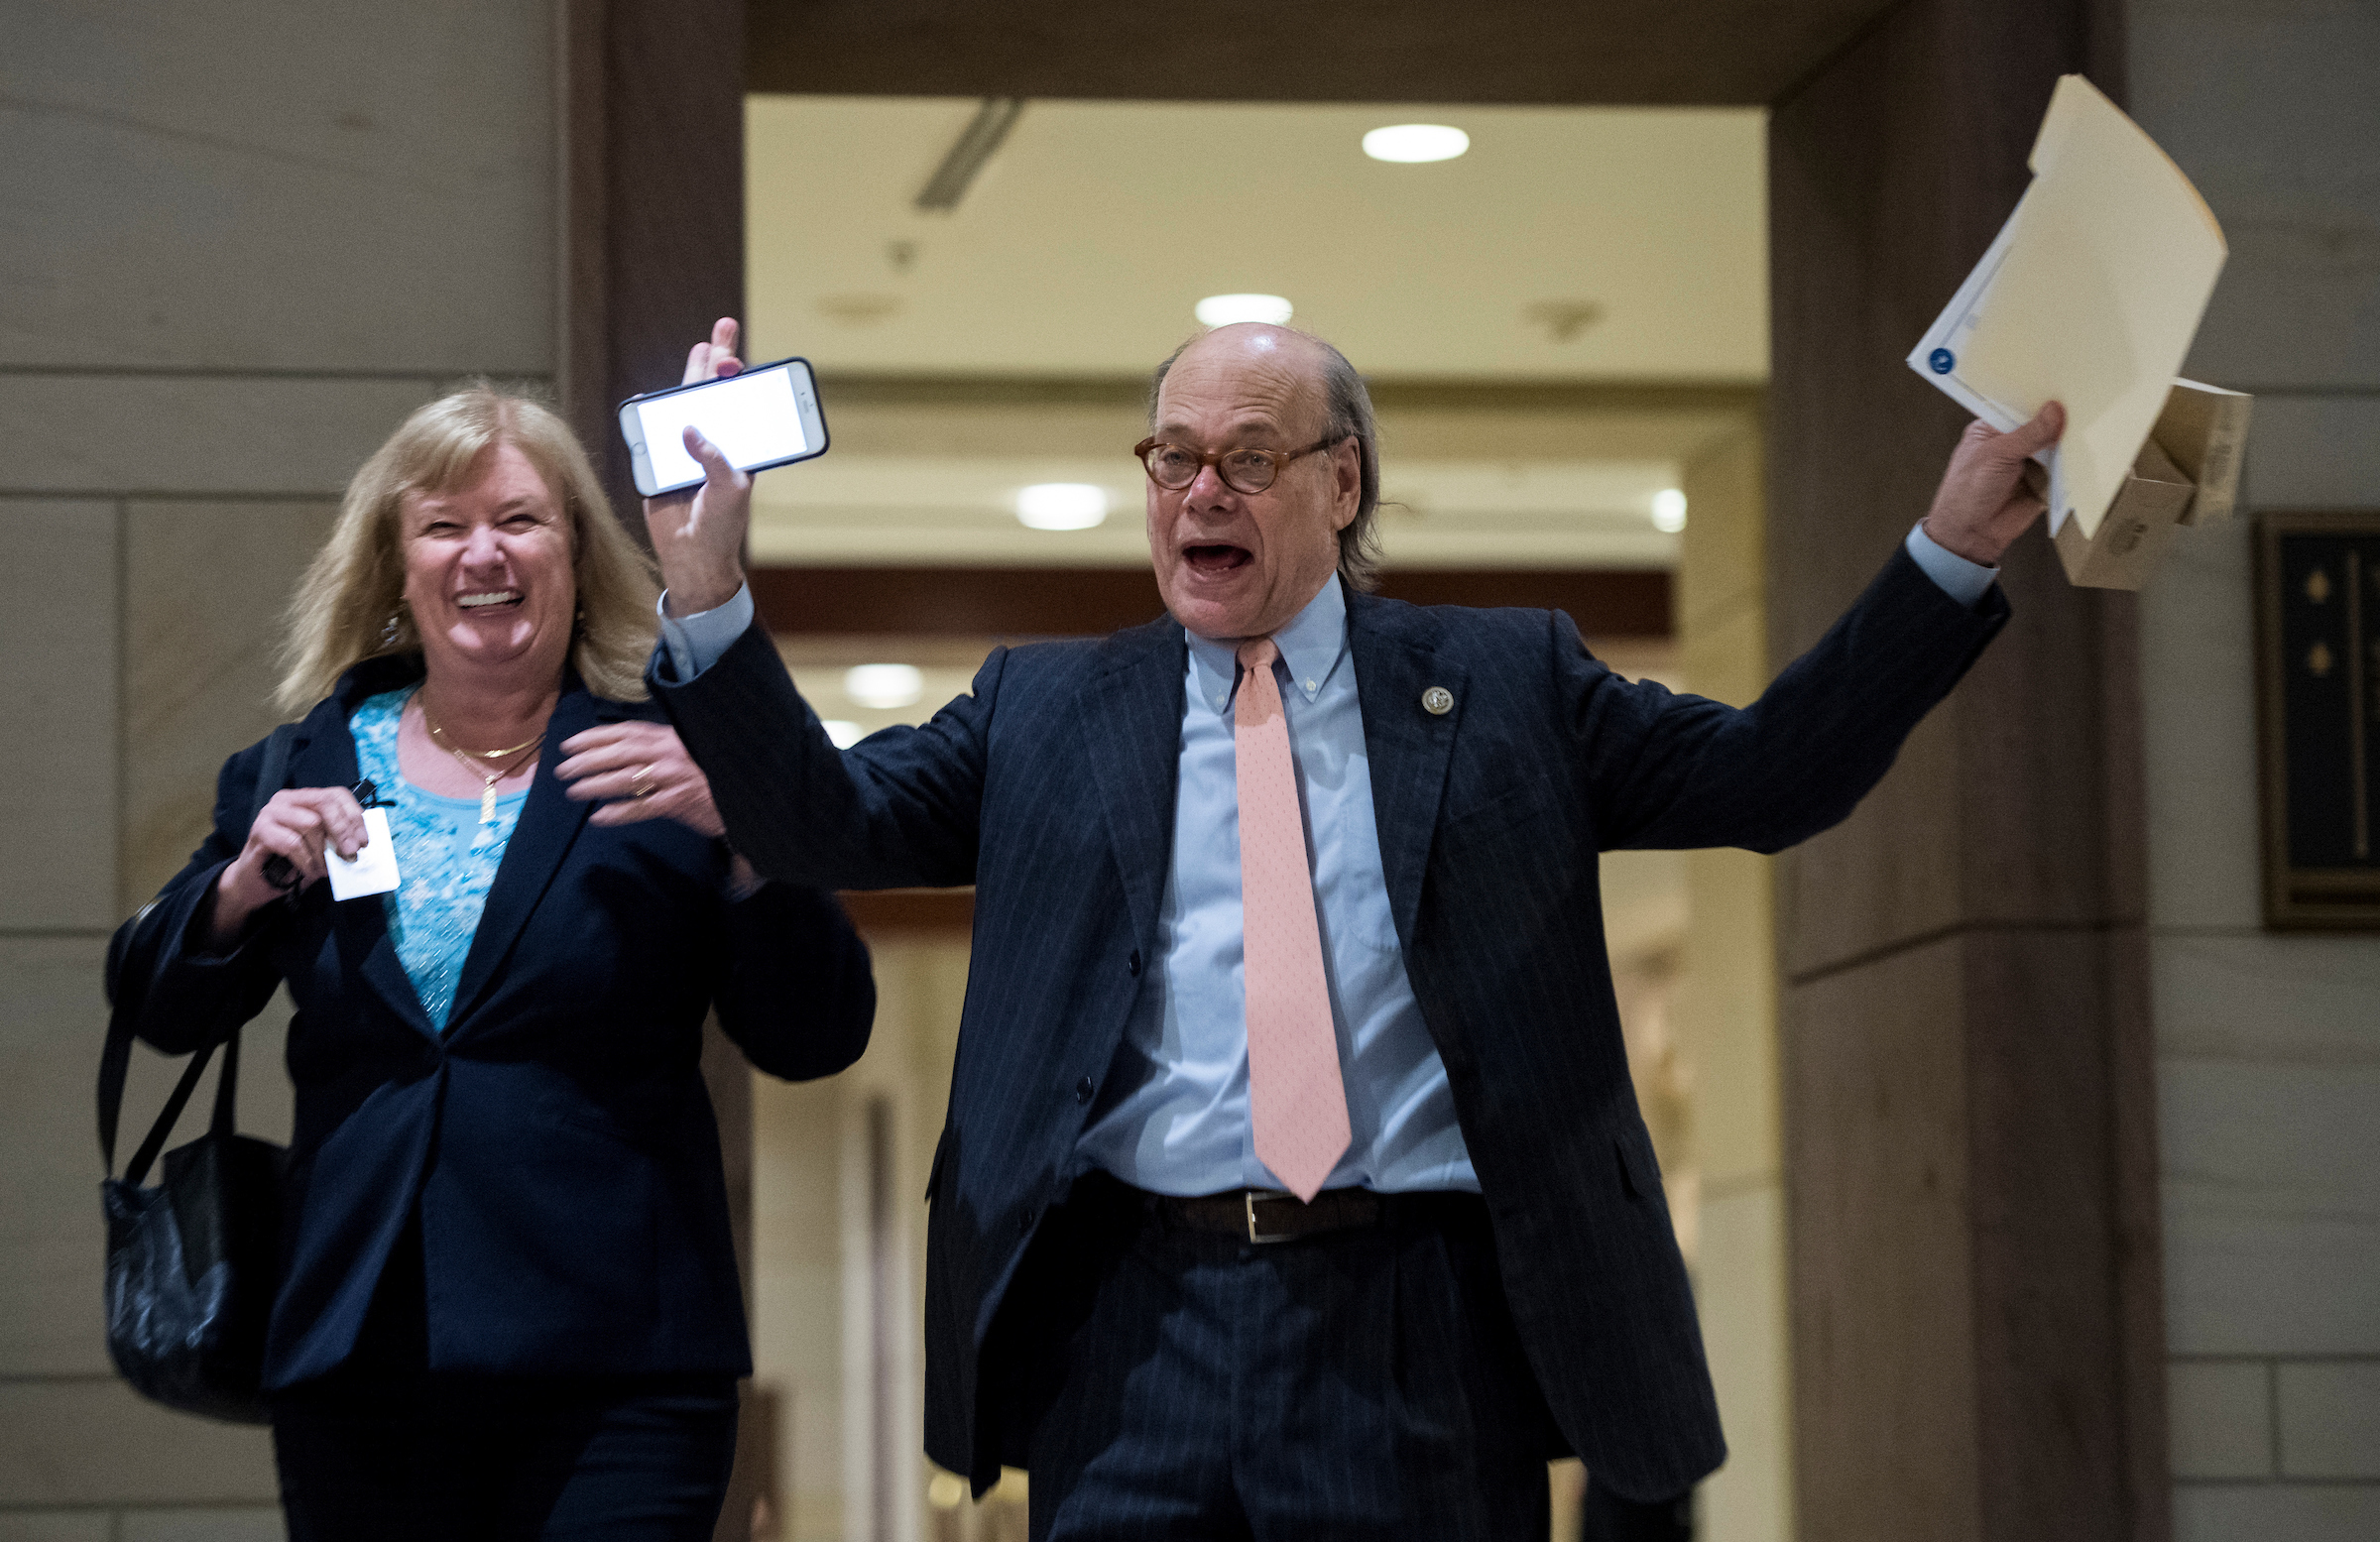 UNITED STATES - FEBRUARY 7: Rep. Carol Shea-Porter, D-N.H., and Rep. Steve Cohen, D-Tenn., arrive for the House Democratic Caucus Issues Conference in the Capitol Visitor Center auditorium on Wednesday, Feb. 7, 2018. (Photo By Bill Clark/CQ Roll Call)